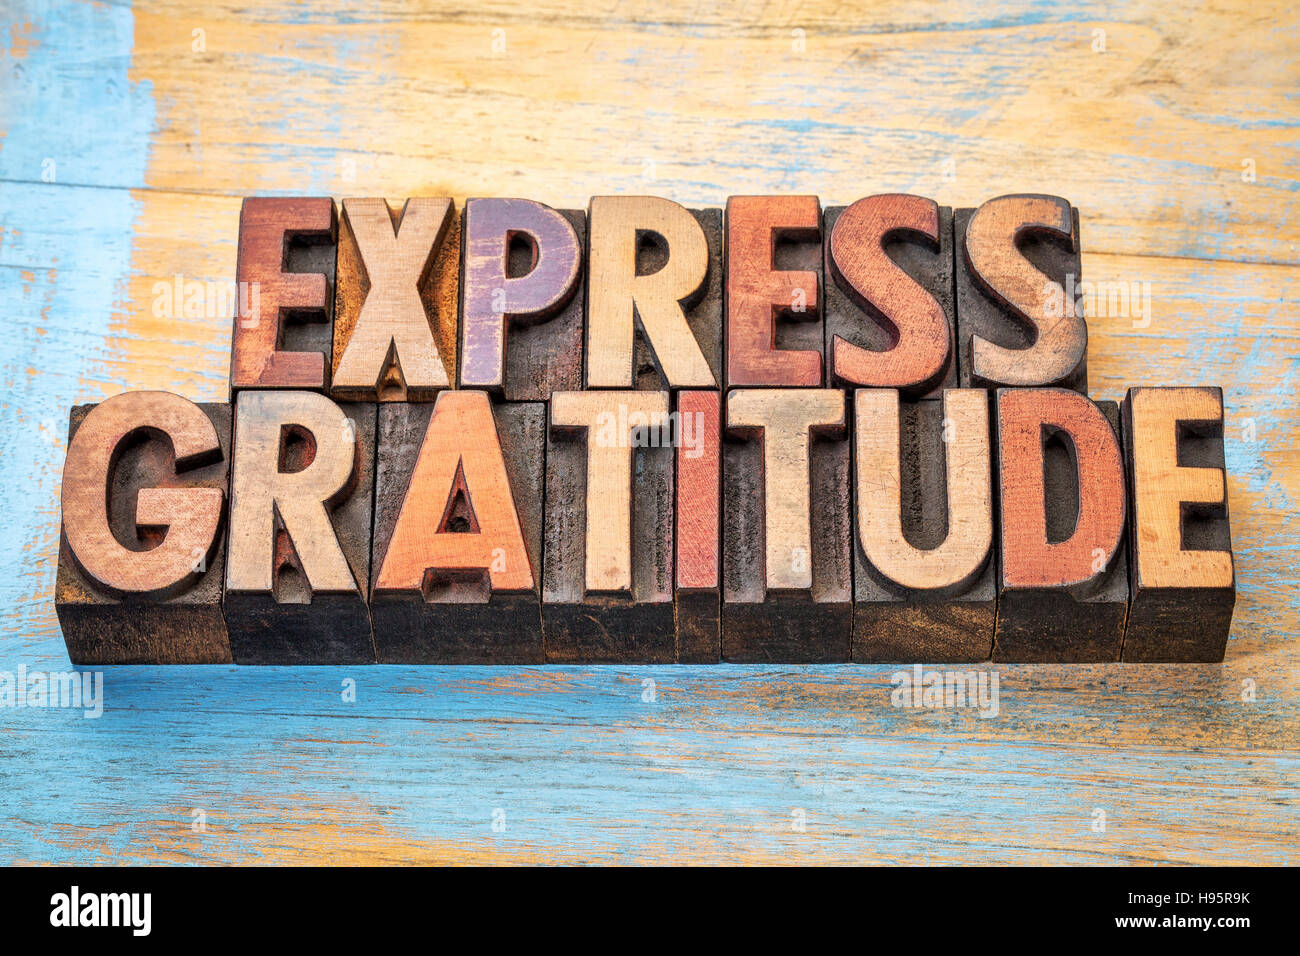 express gratitude word abstract  in vintage letterpress wood type - Stock Image